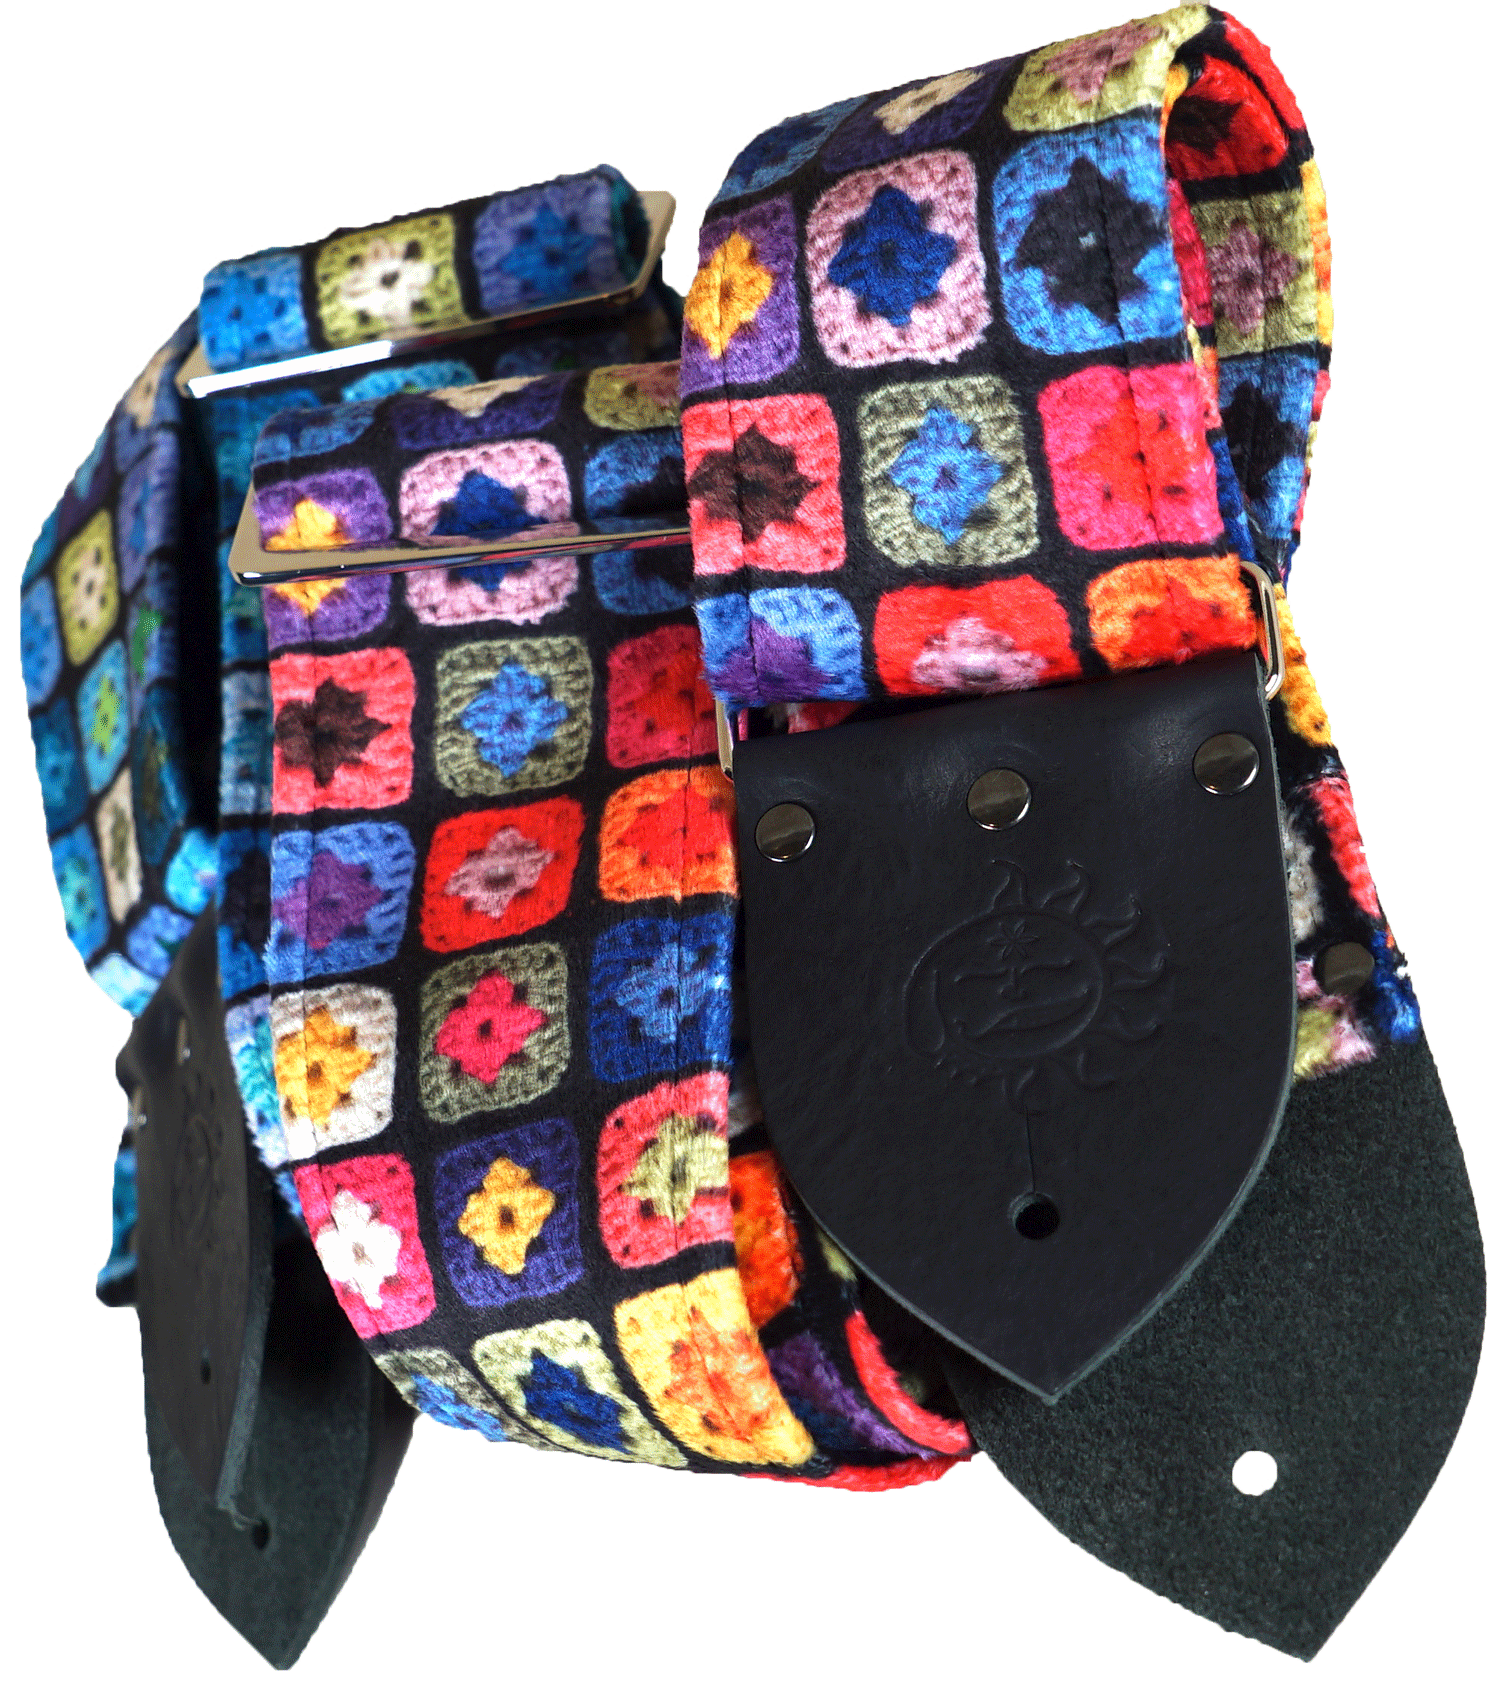 dog days guitar straps granny square guitar strap velvet.png